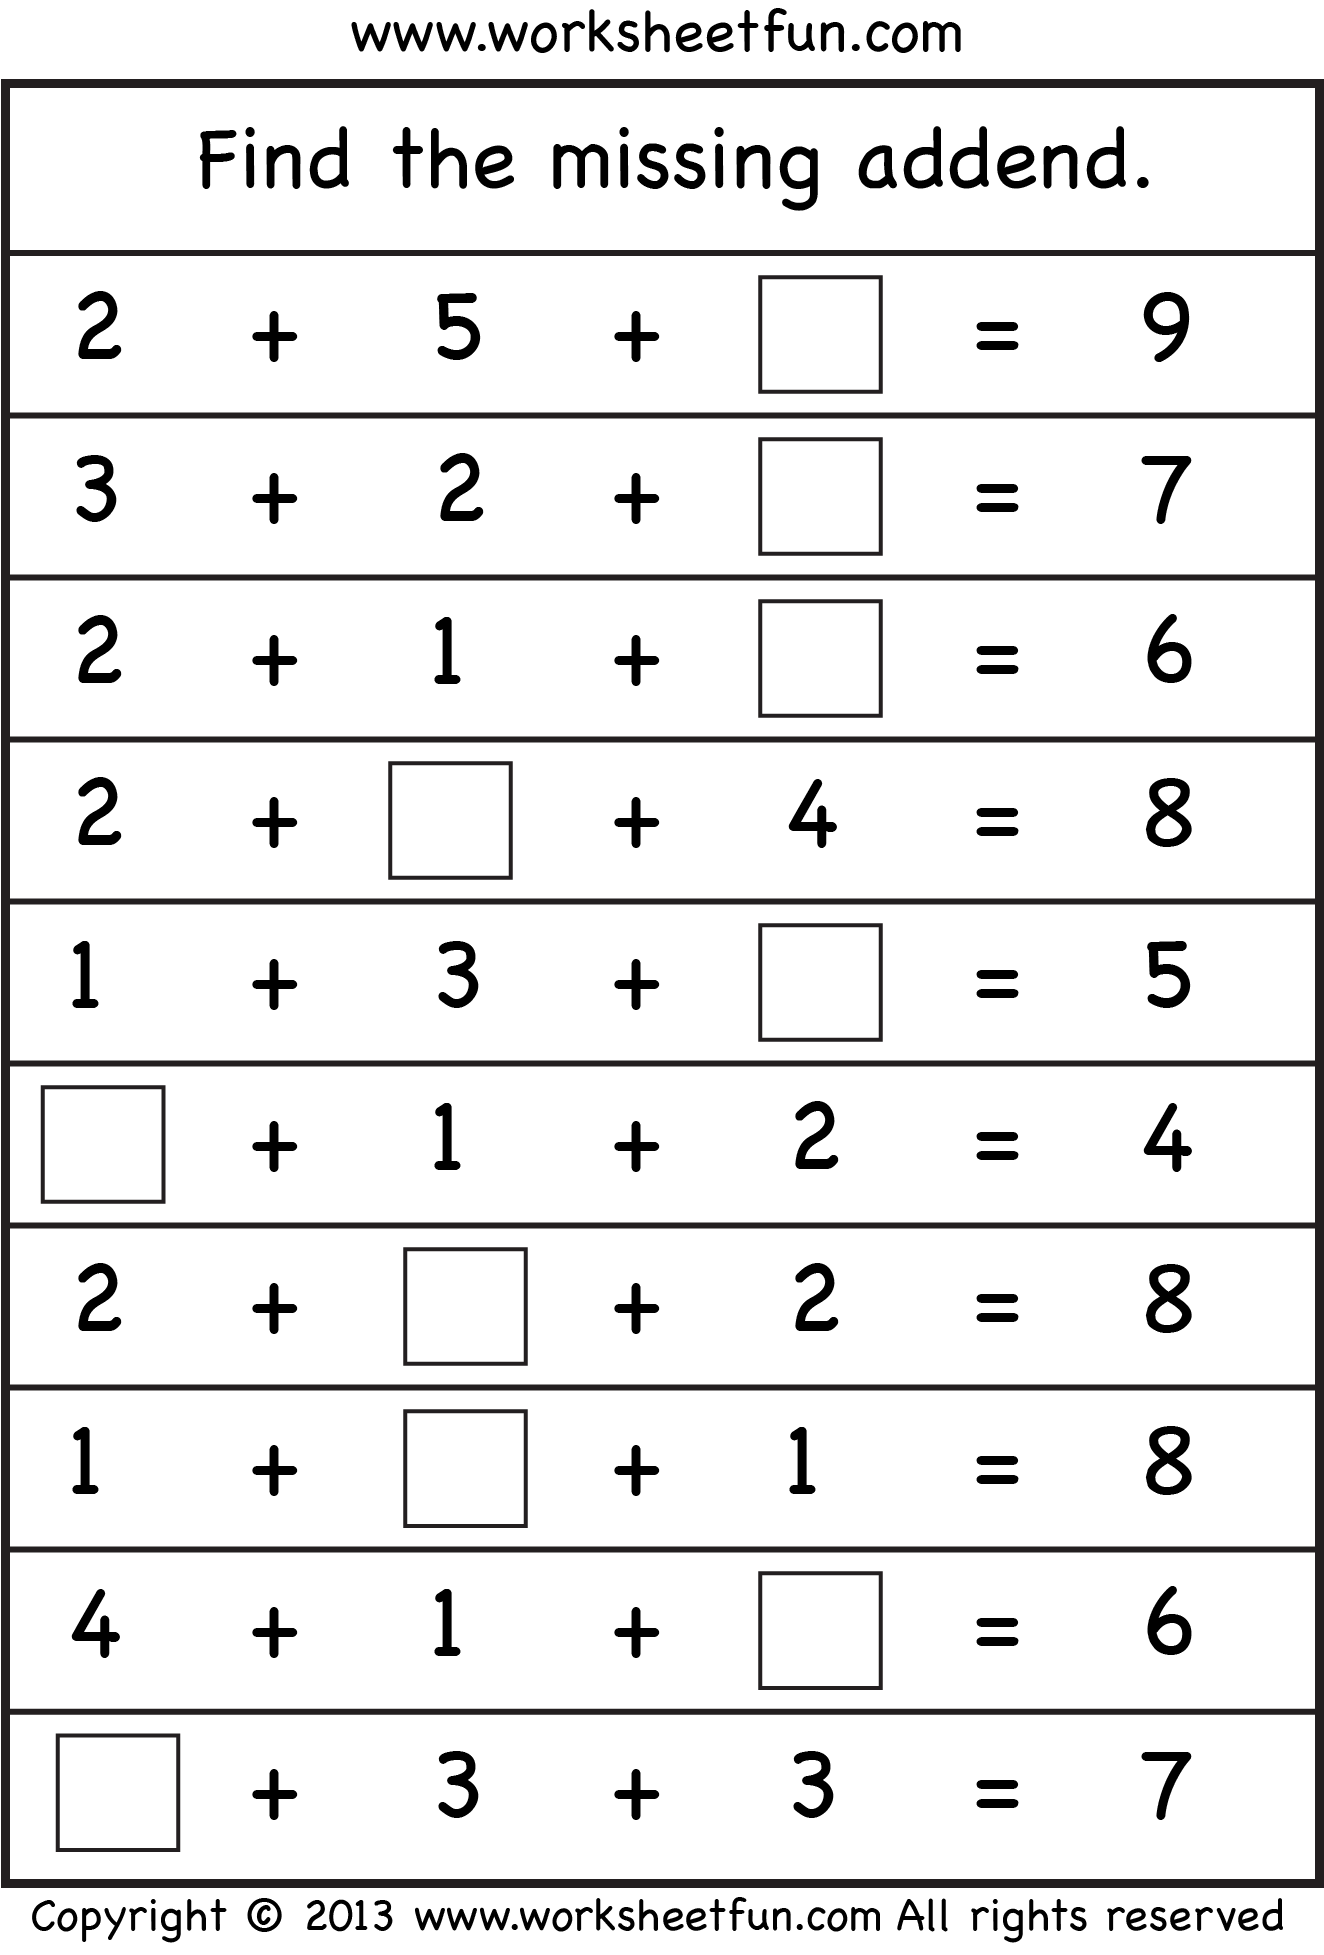 Lots of math worksheets to print out | School - Math | Pinterest ...